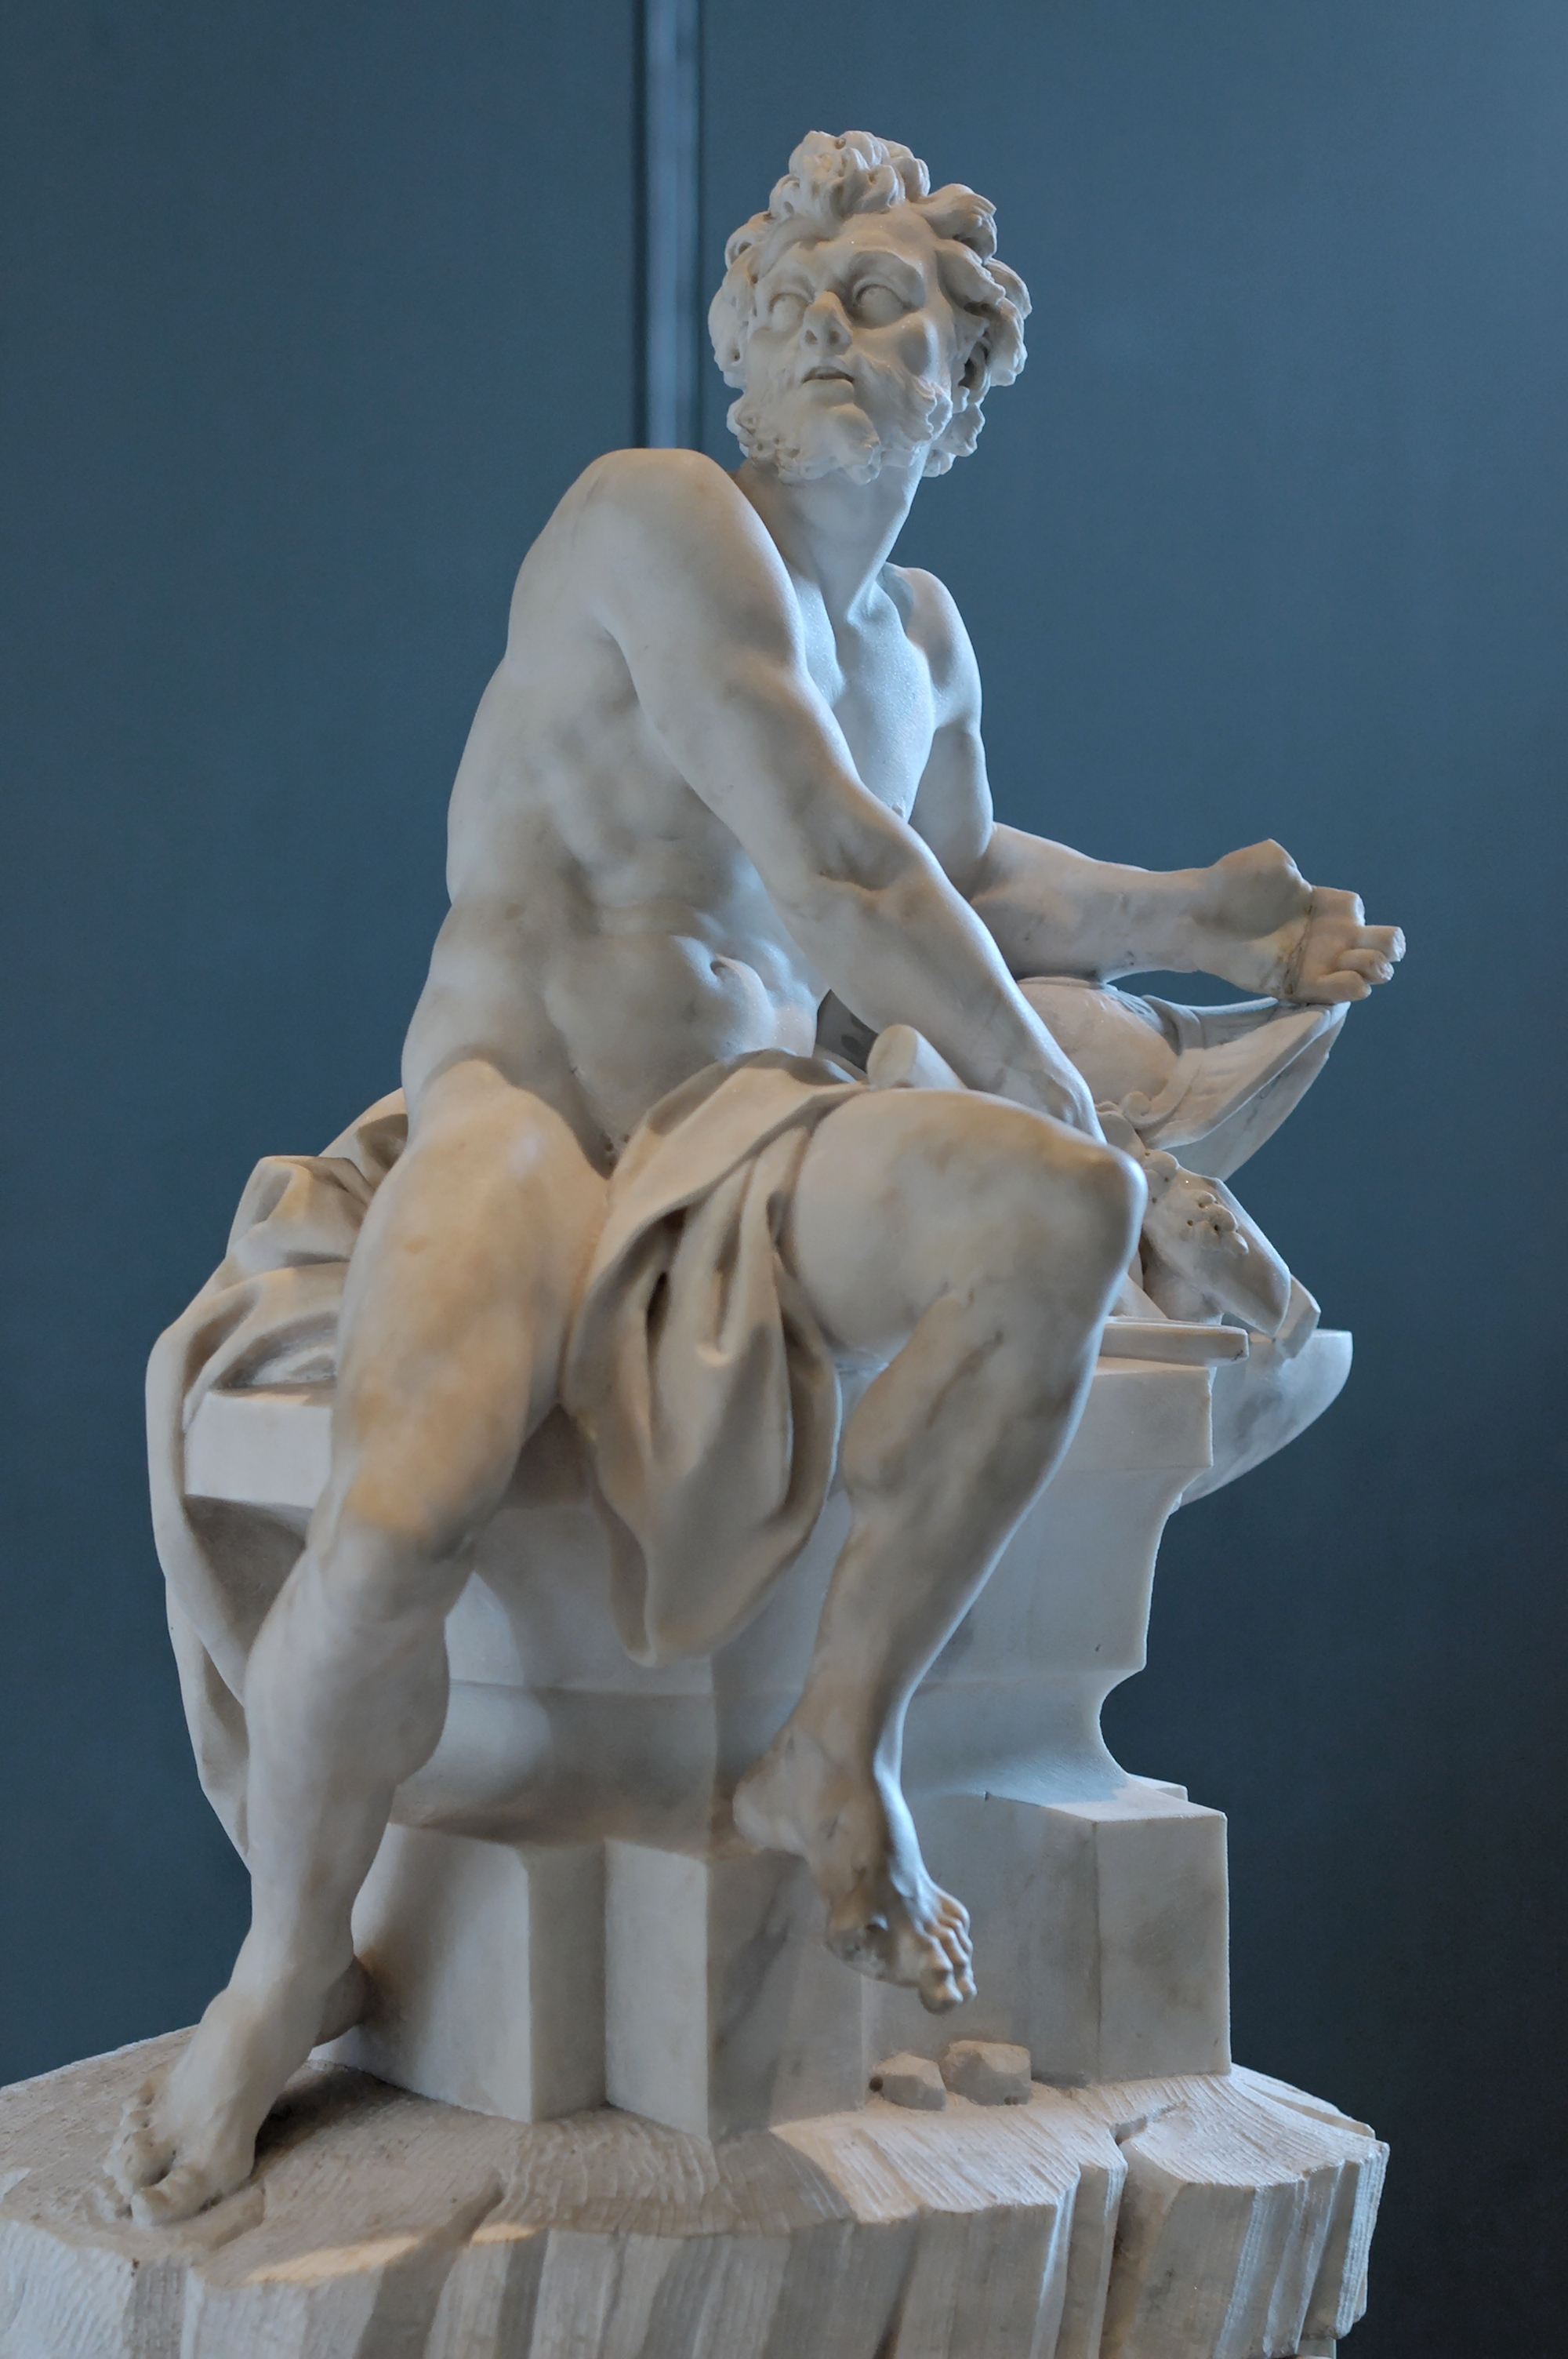 An image of Vulcan, the Roman equivalent of Hephaestus.